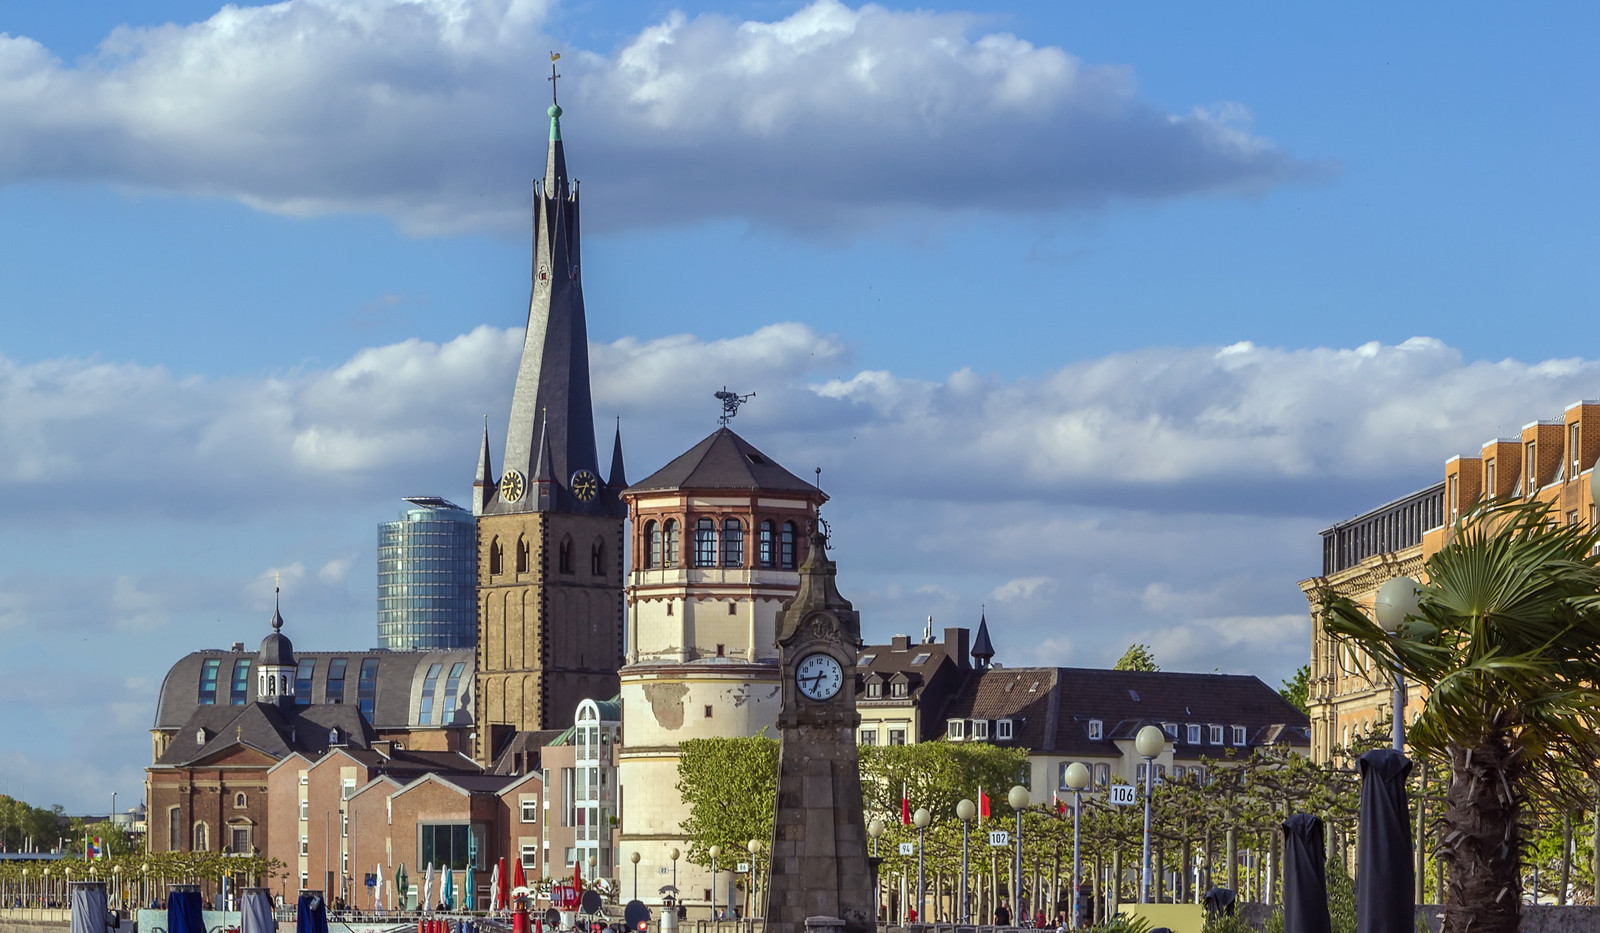 Canva - view of Dusseldorf historic cent